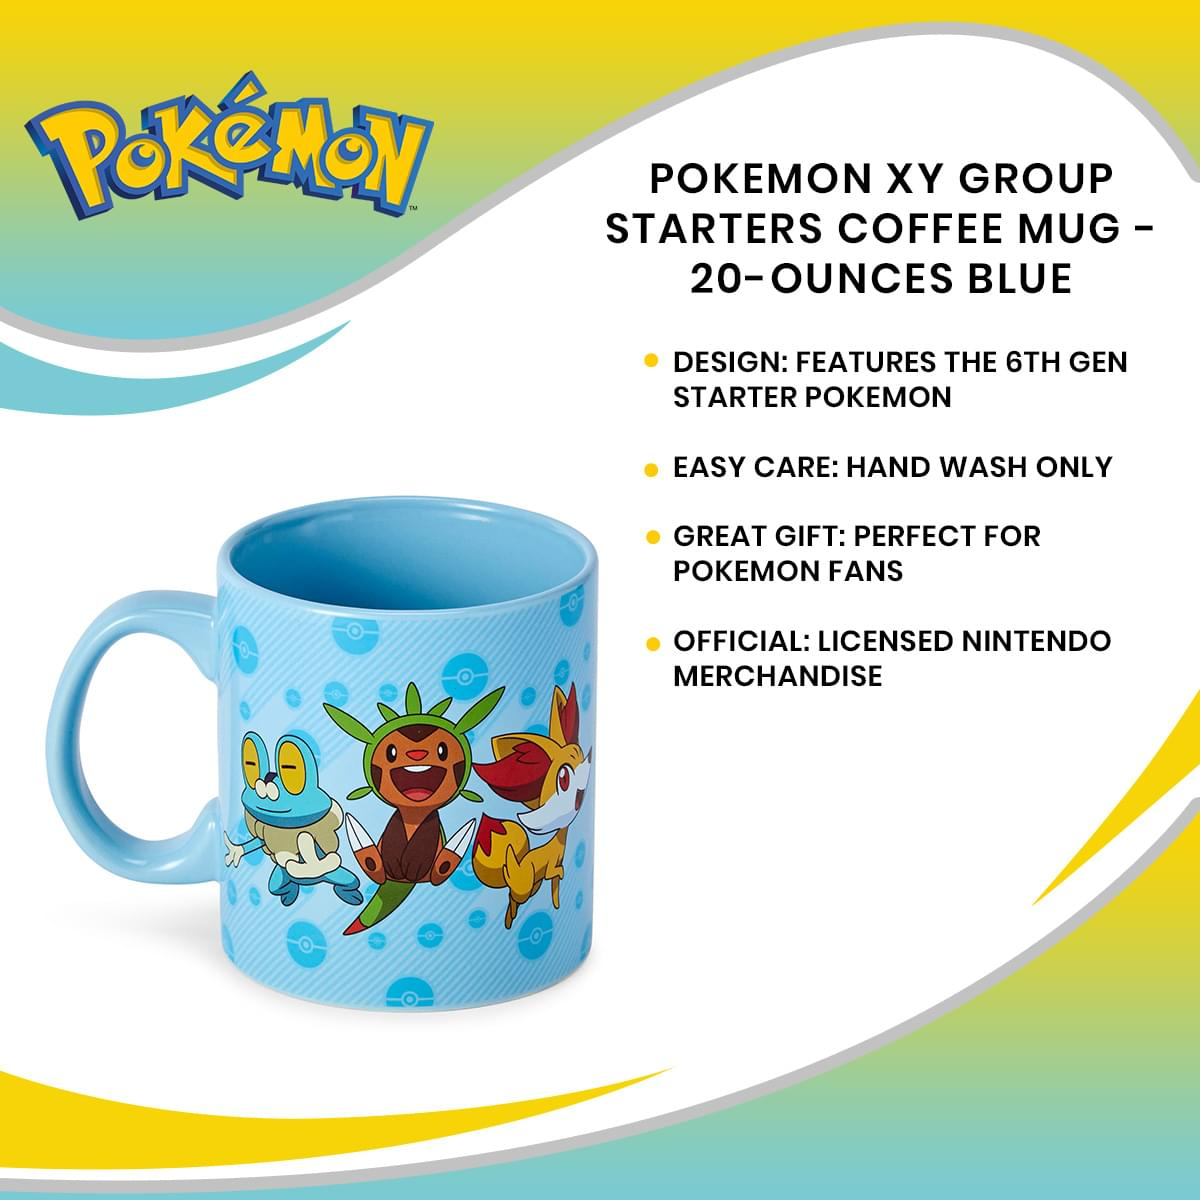 Pokemon XY Group Starters Coffee Mug - 20-Ounces Blue